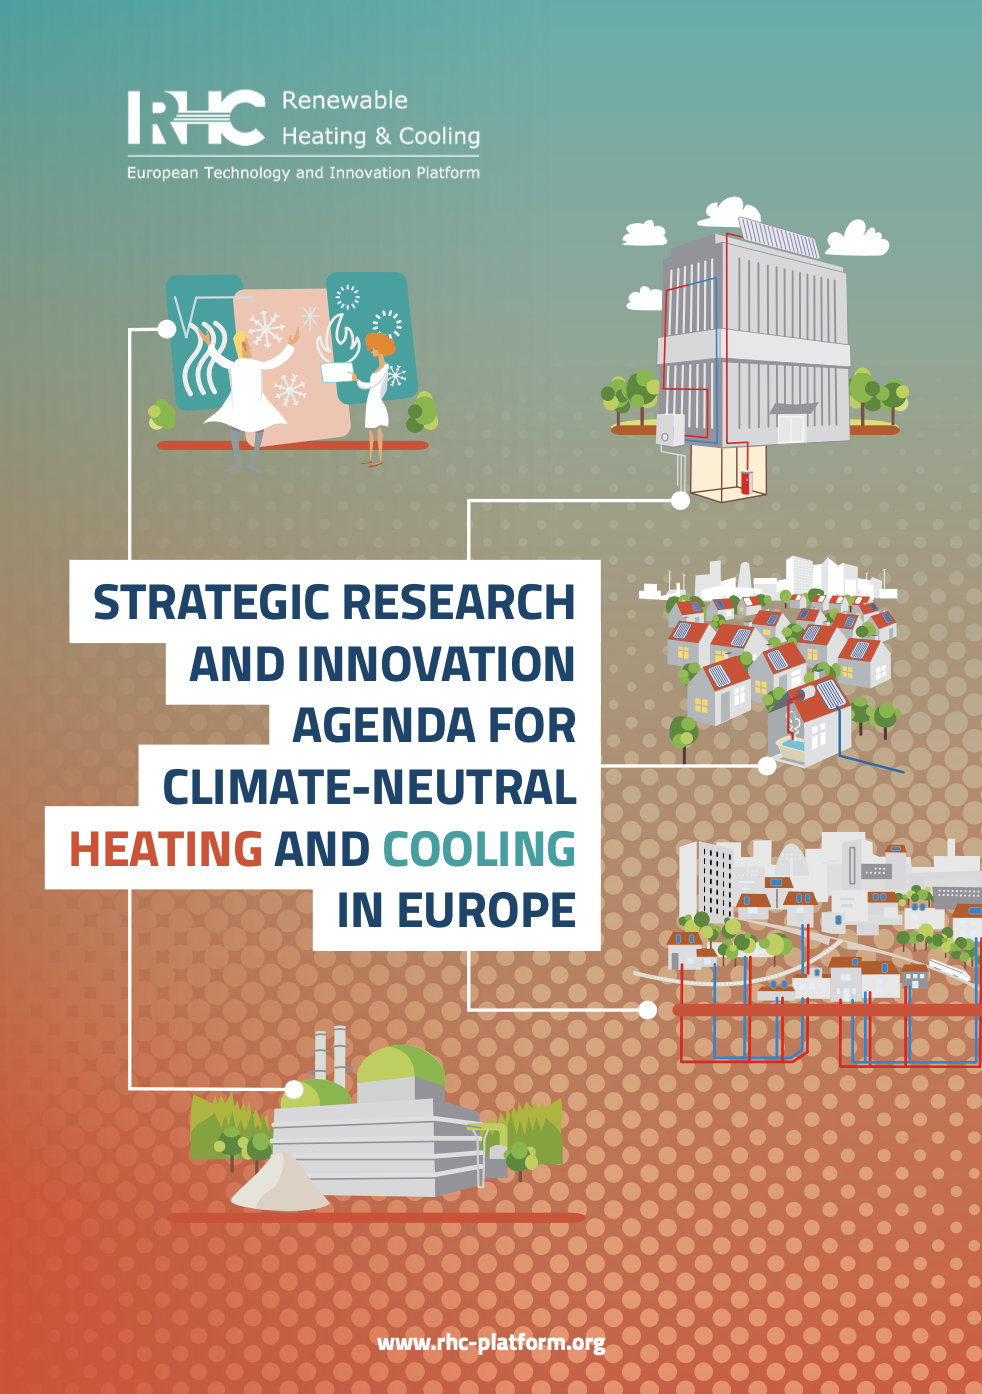 Strategic Research and Innovation Agenda for climate-neutral heating and cooling in Europe